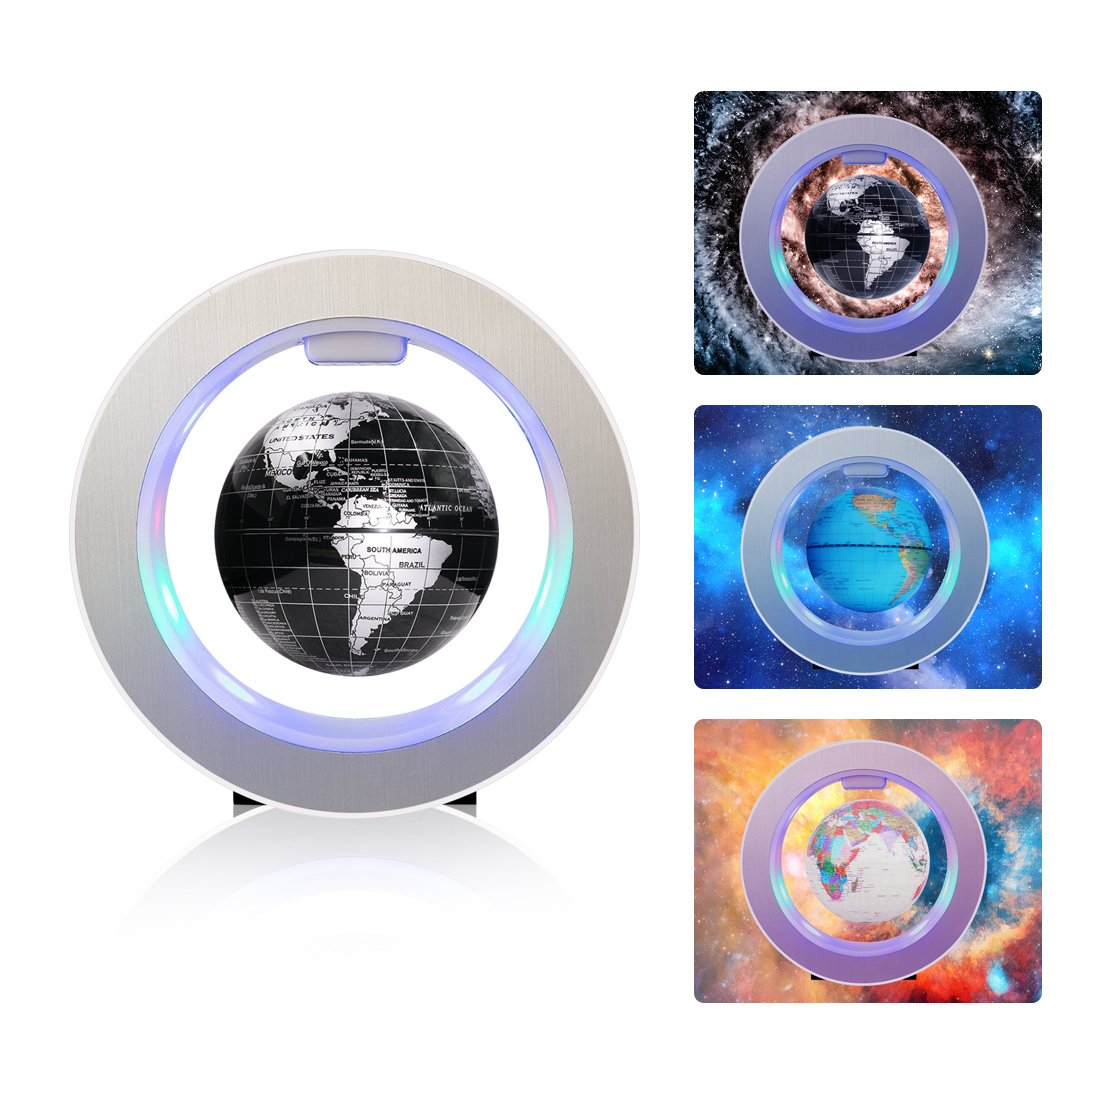 Magnetic Floating Globe 4inch Rotating Mysteriously Suspended in Air World Map with LED Lights for Children Gift Home Office Desk Decoration (Black)